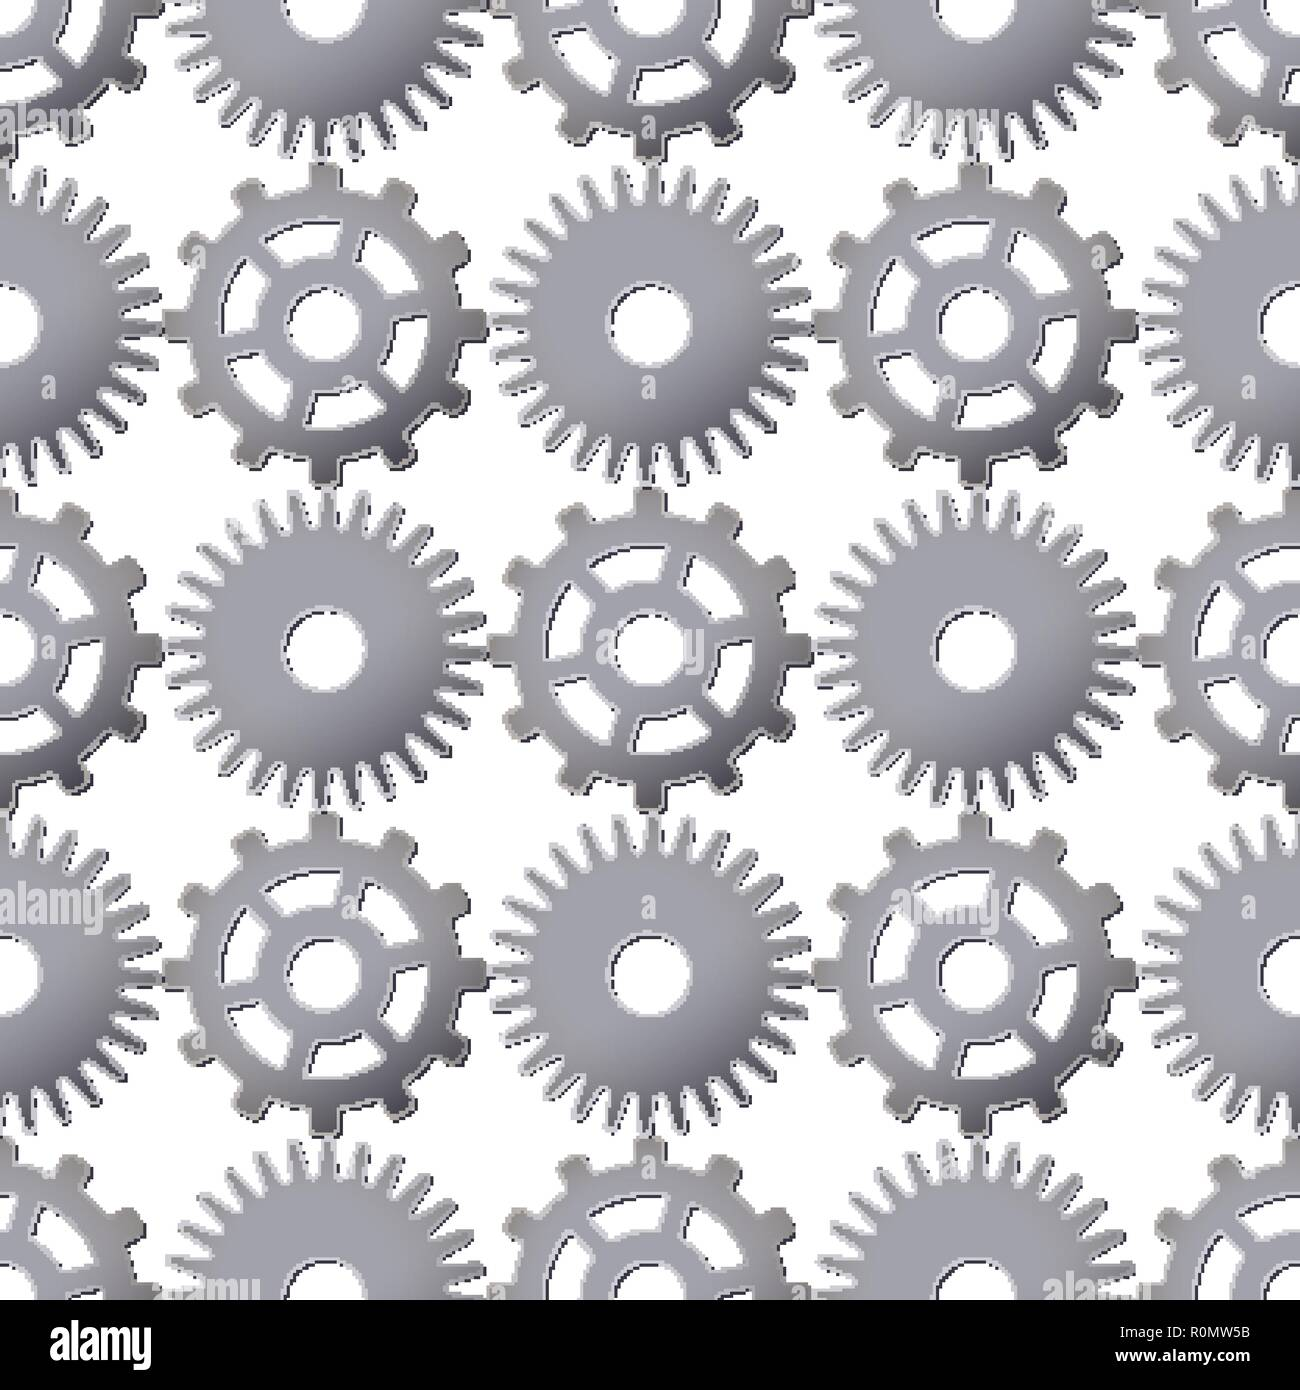 Seamless pattern background with metallic gears. Vector illustration. Machine detail design. - Stock Vector